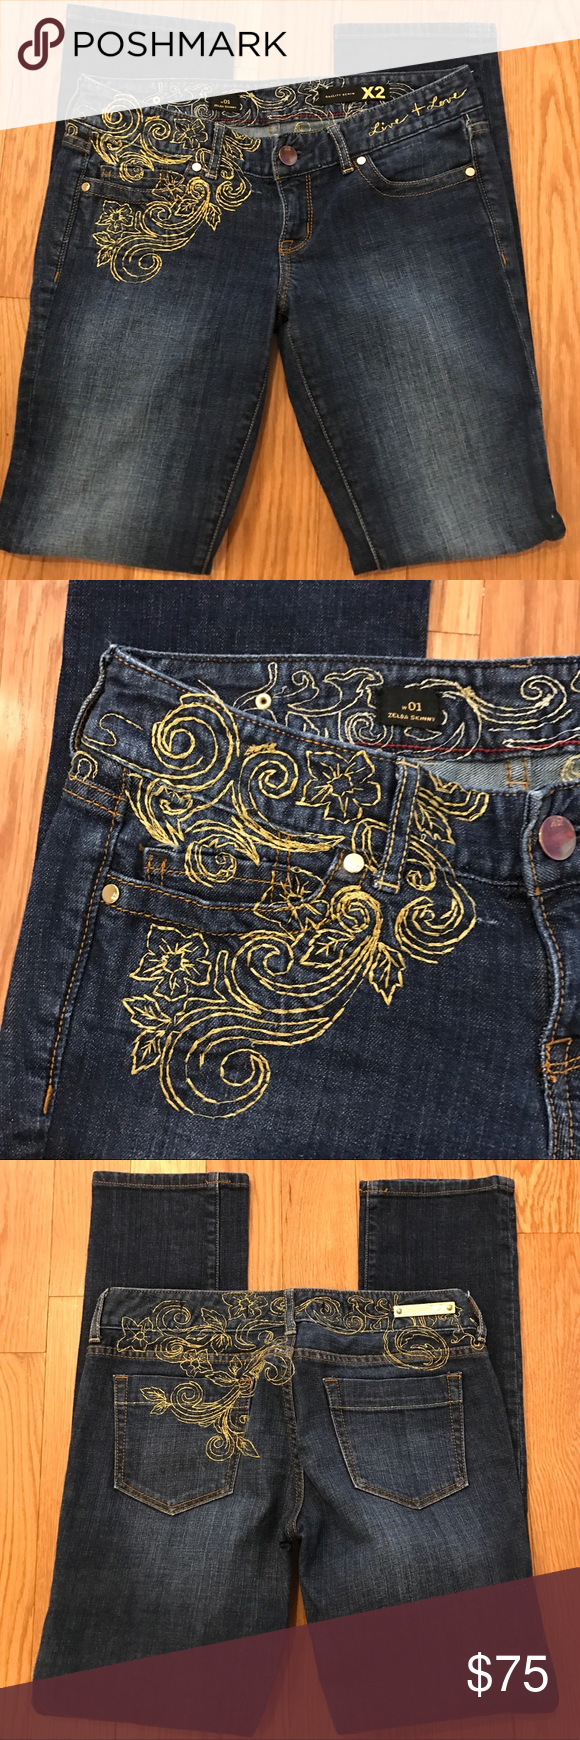 Express X2 Skinnies W Gold Embroidery Pinterest Gold Embroidery